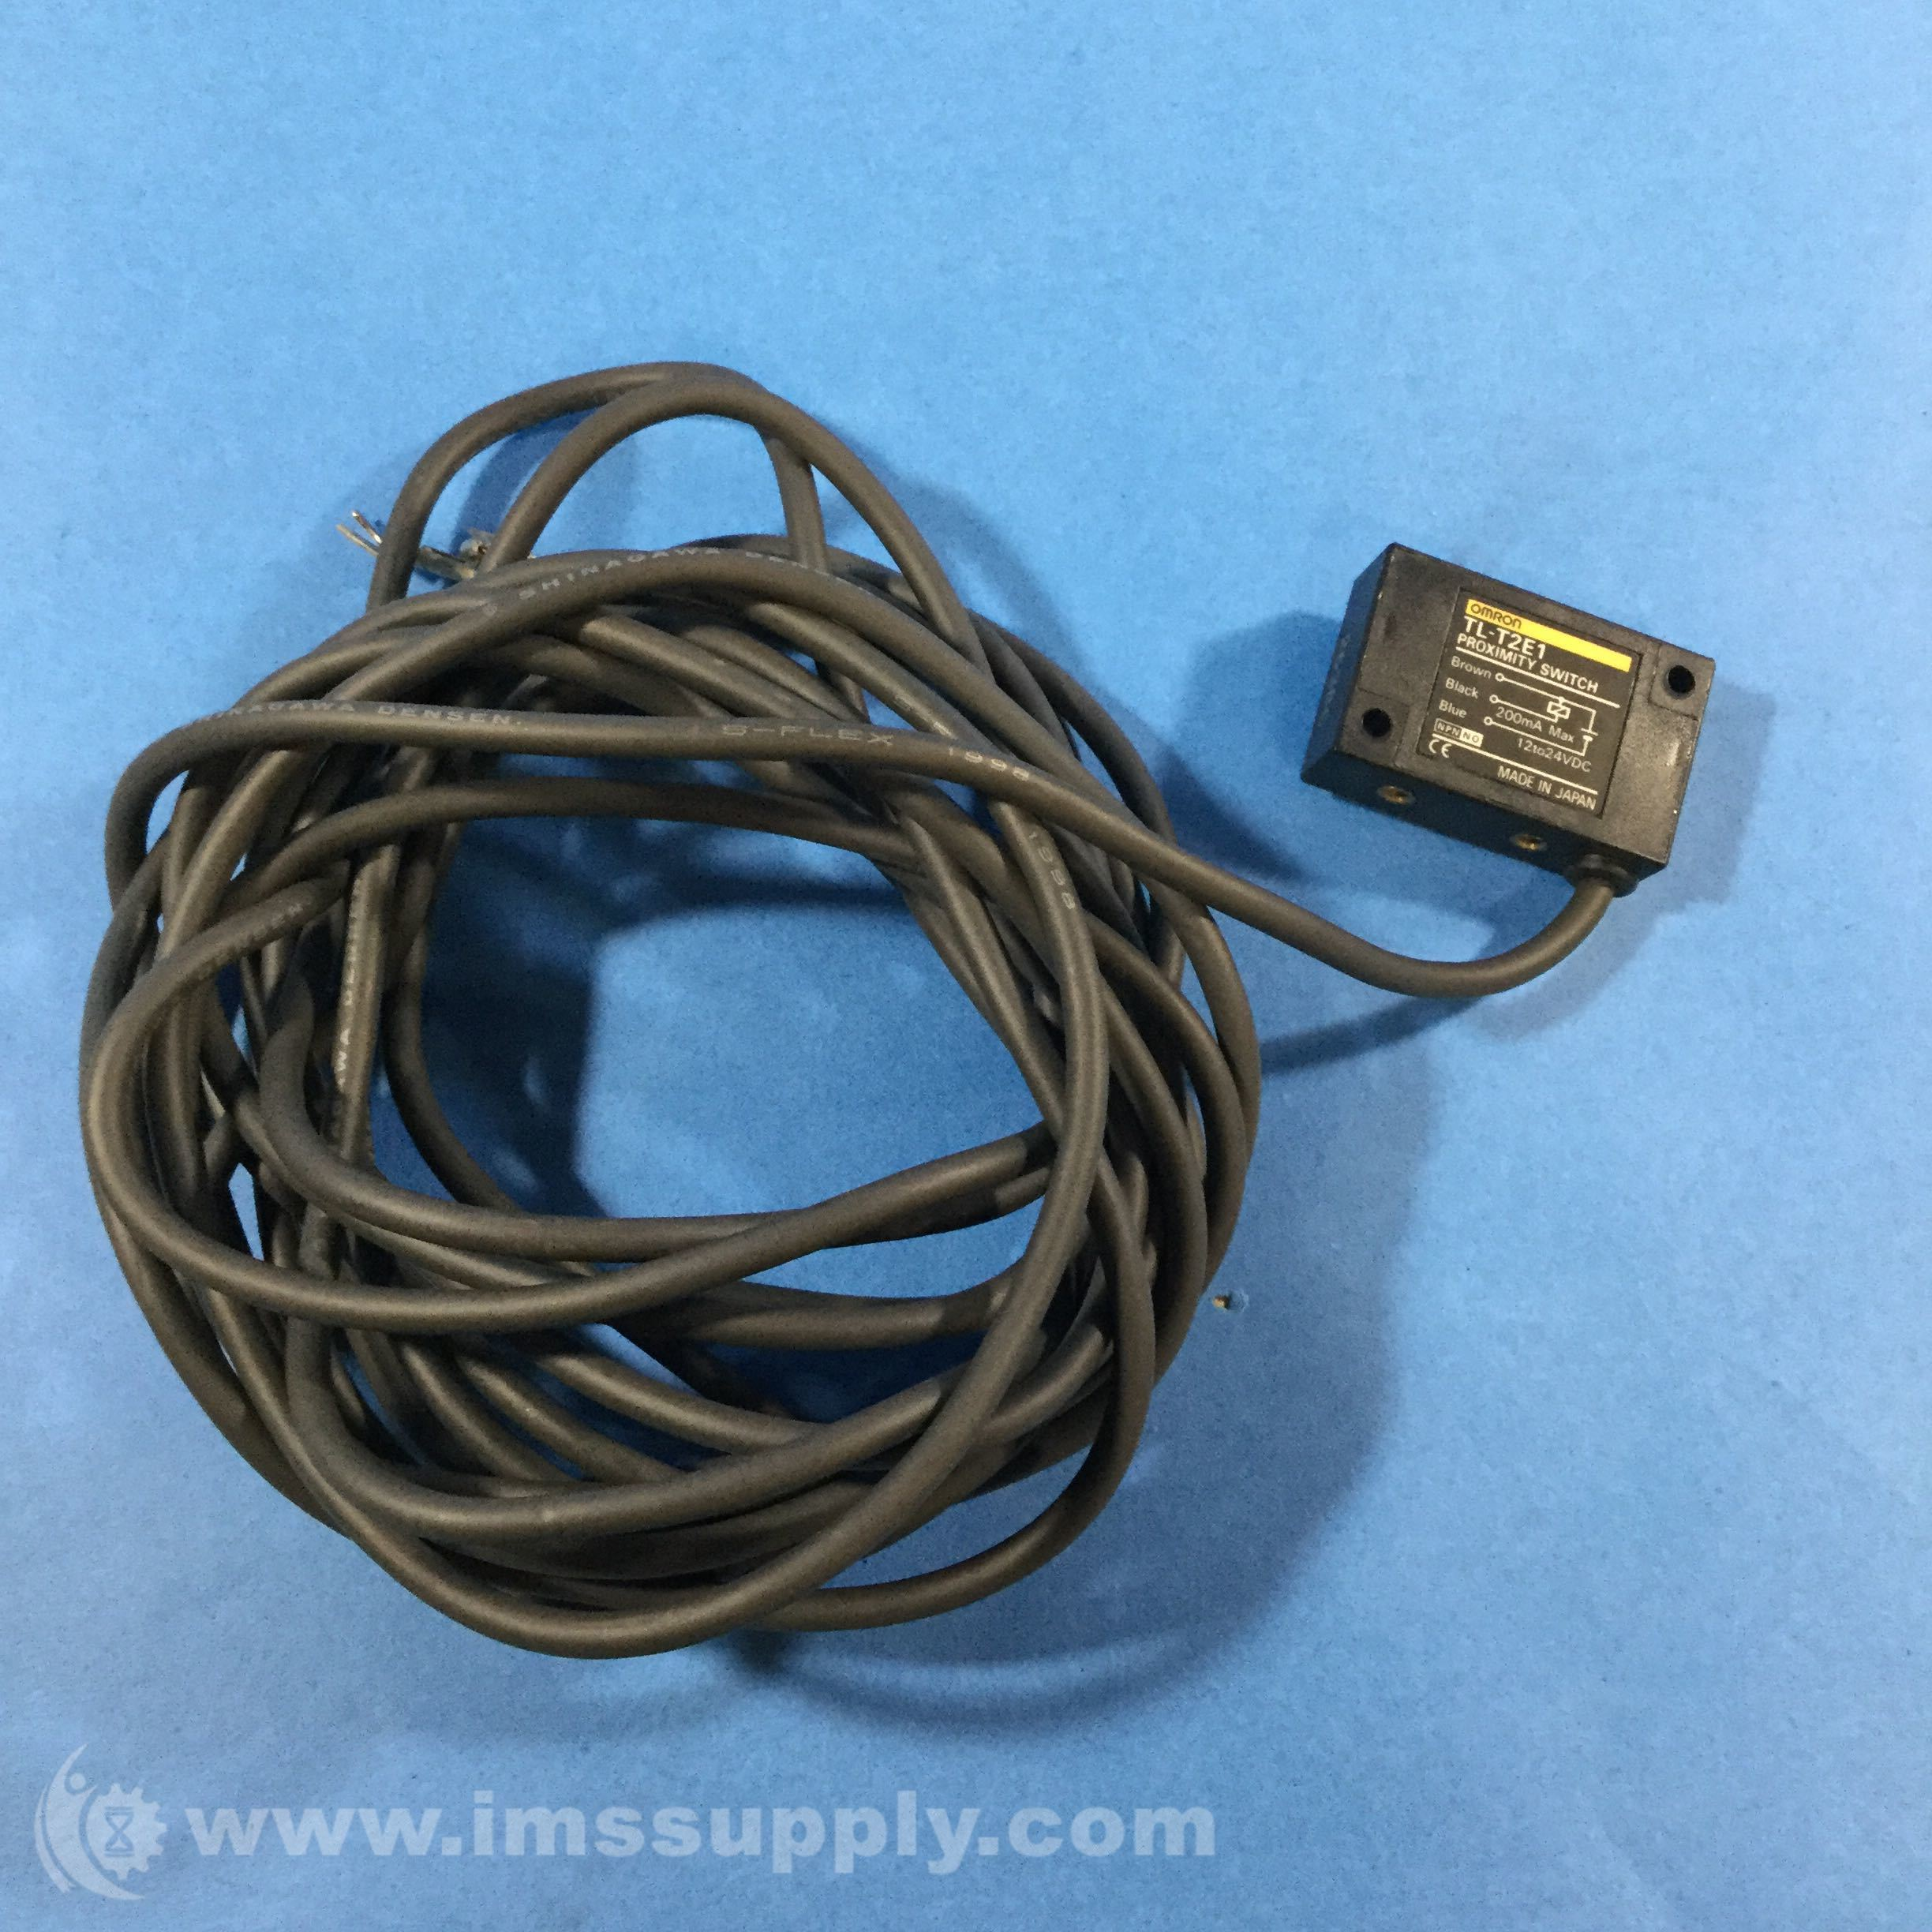 Omron TL-T2E1 Inductive Proximity Switch, TL-T Series, Slim, 2 mm ...